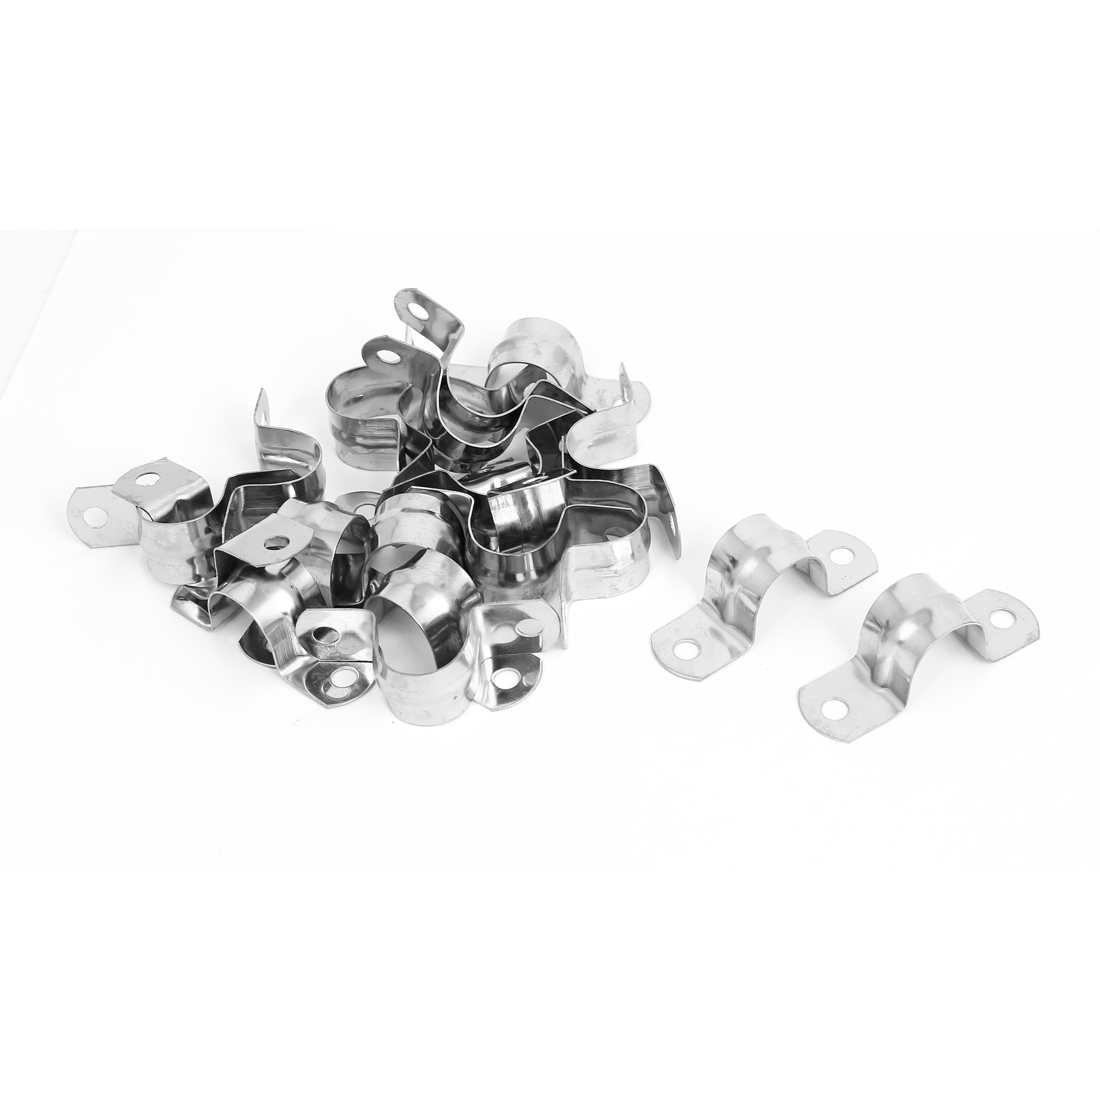 M20 Dia Two Hole Stainless Steel Pipe Strap Clips Fastener Holder 20pcs